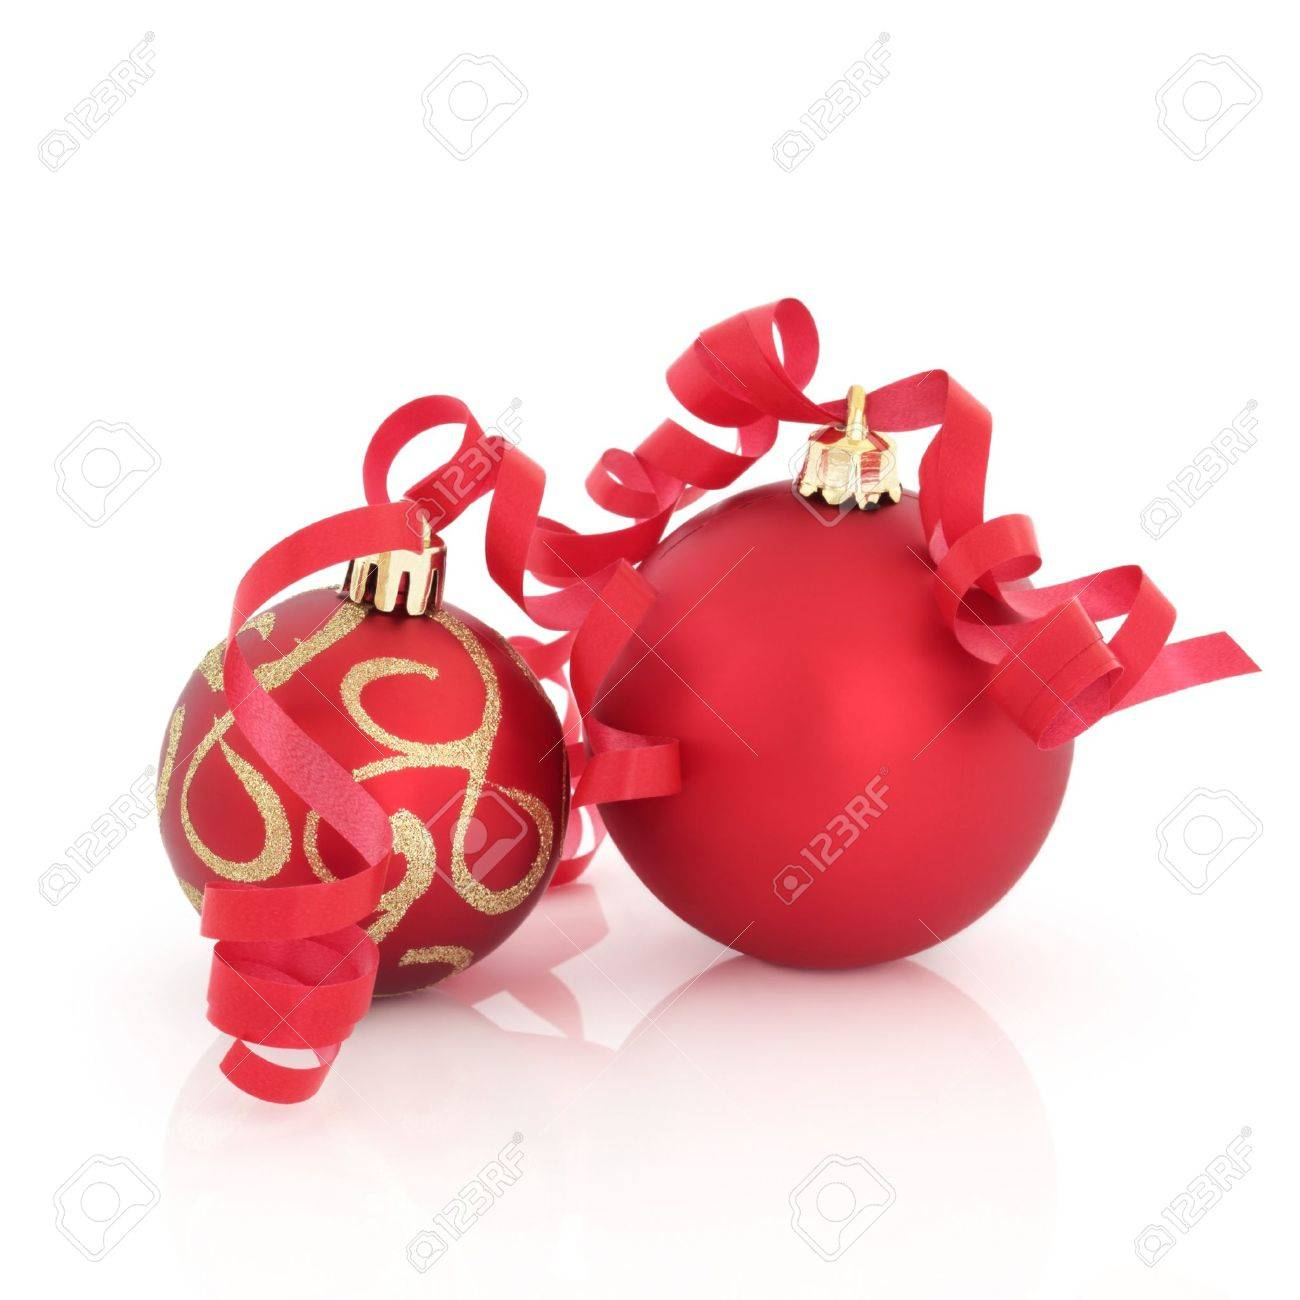 Red and gold christmas decorations with ribbon isolated over white background. Stock Photo - 7774722